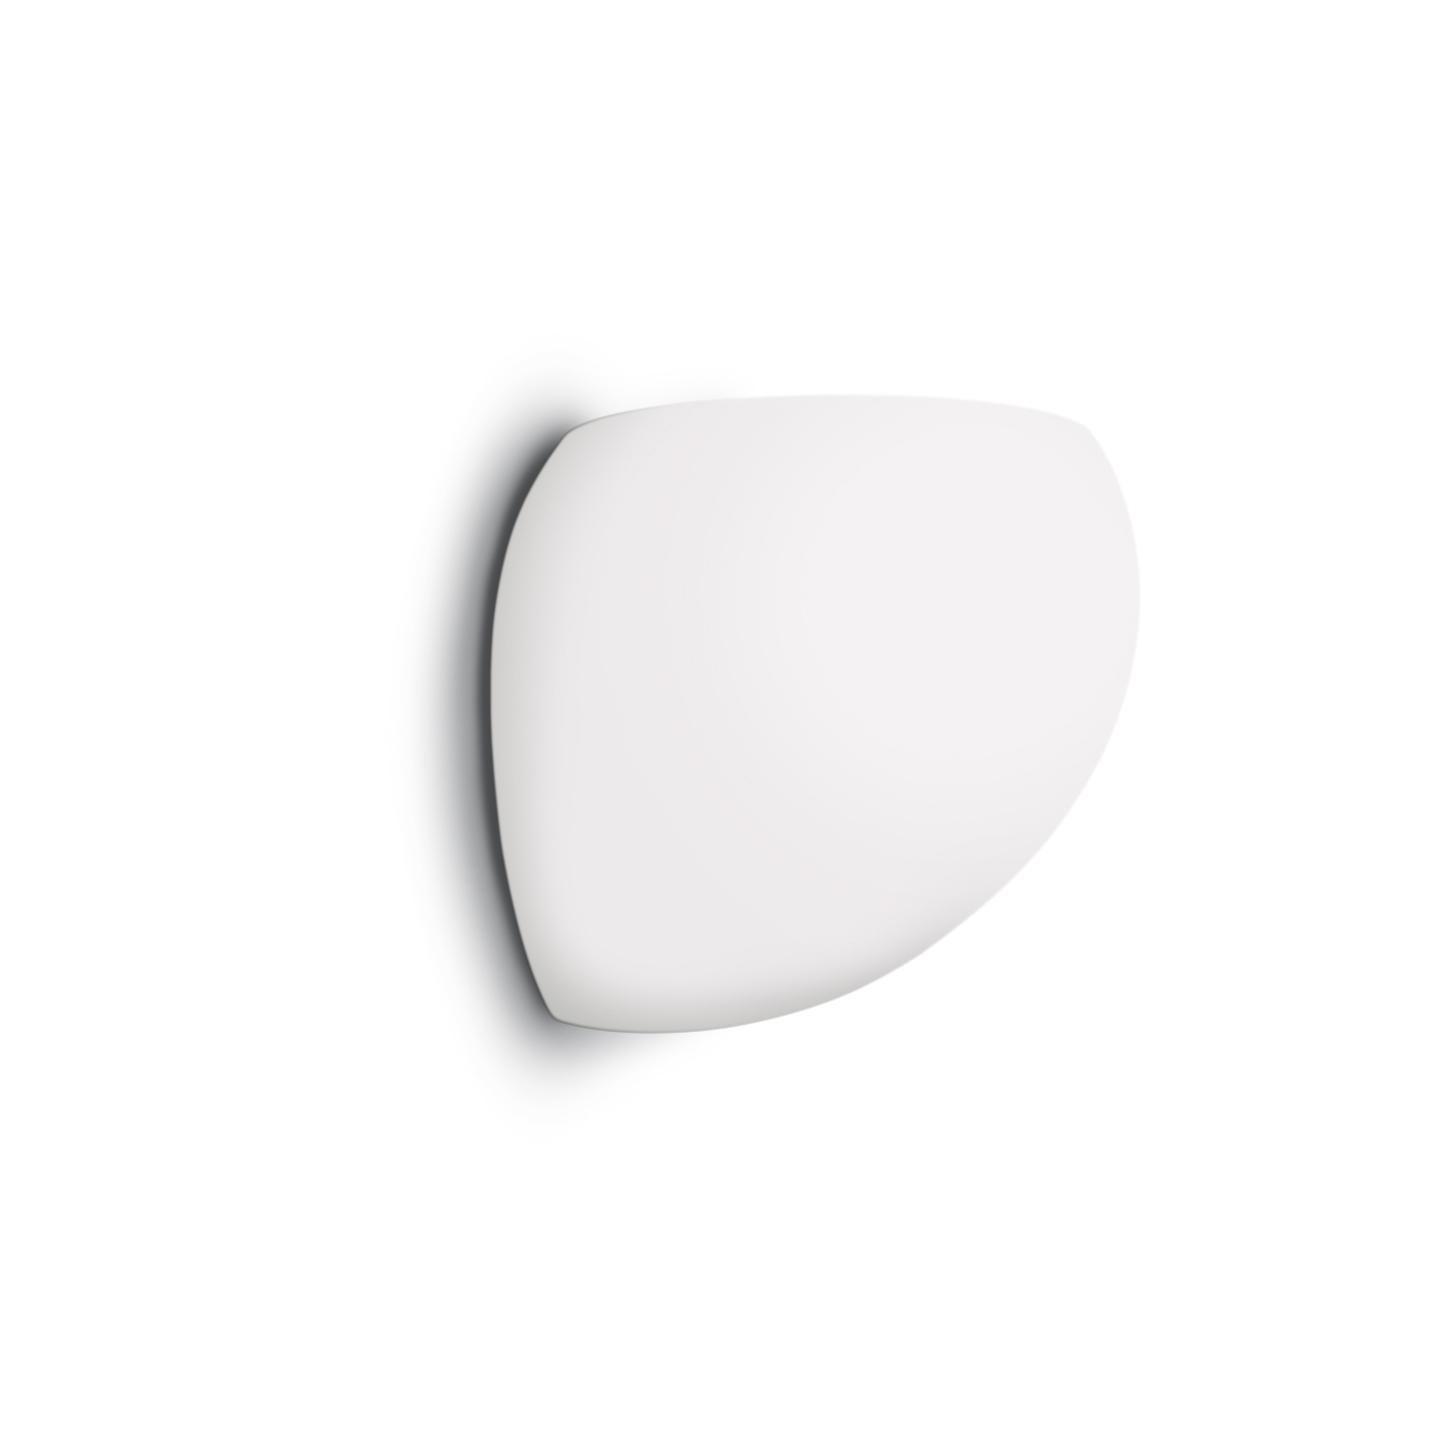 Leucos Golf P Wall Light in Satin White and Chrome by Toso & Massari